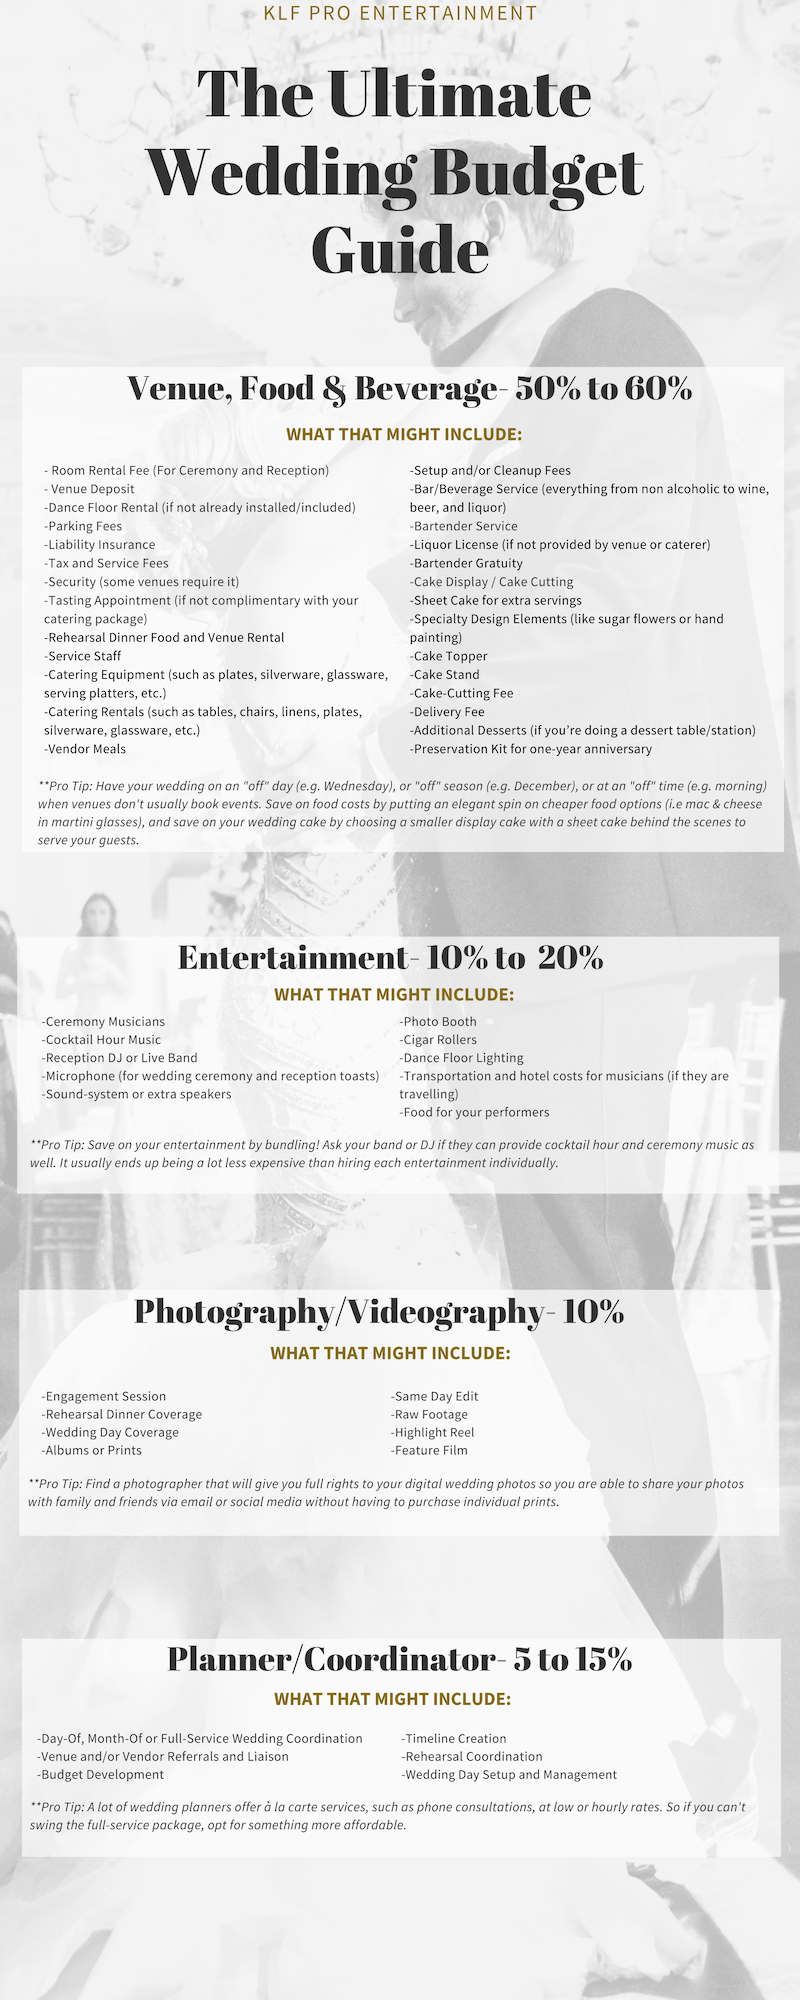 The Ultimate Wedding Budget Guide Klf Pro Entertainment